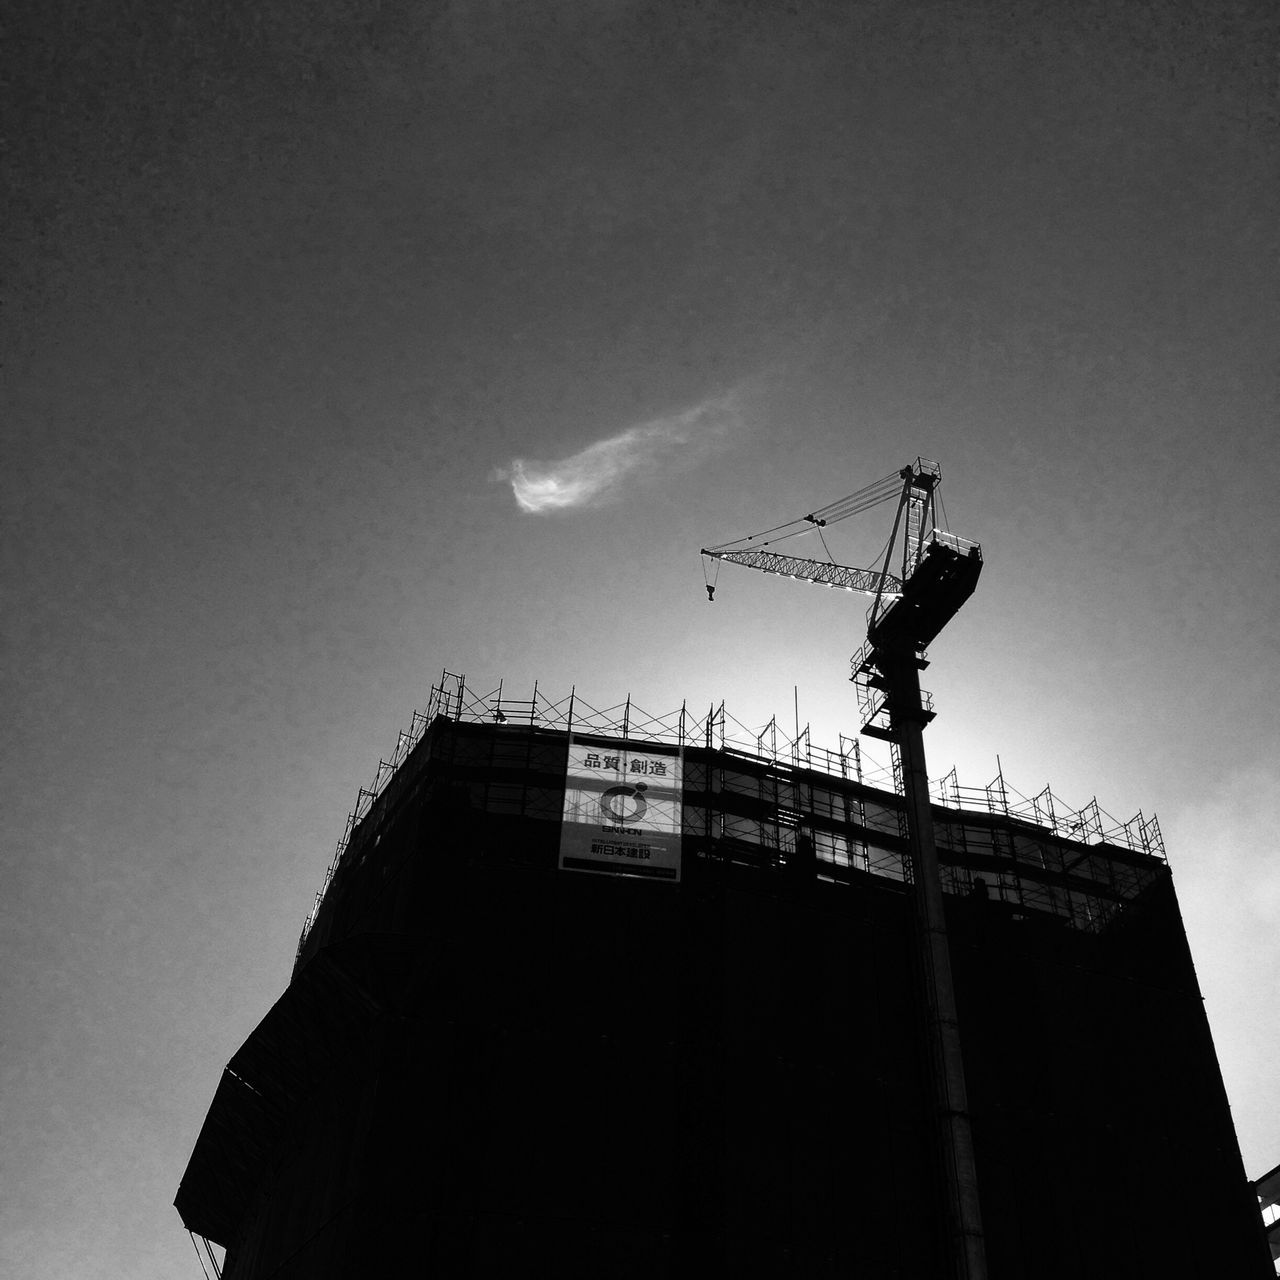 Low Angle View Sky Mode Of Transport Silhouette Transportation Development Dusk Industry Cloud Day Outdoors Cloud - Sky High Section No People Japan Tokyo Days Tokyo,Japan Downtown City Life City Office Building Crane Construction Construction Work Blue Sky